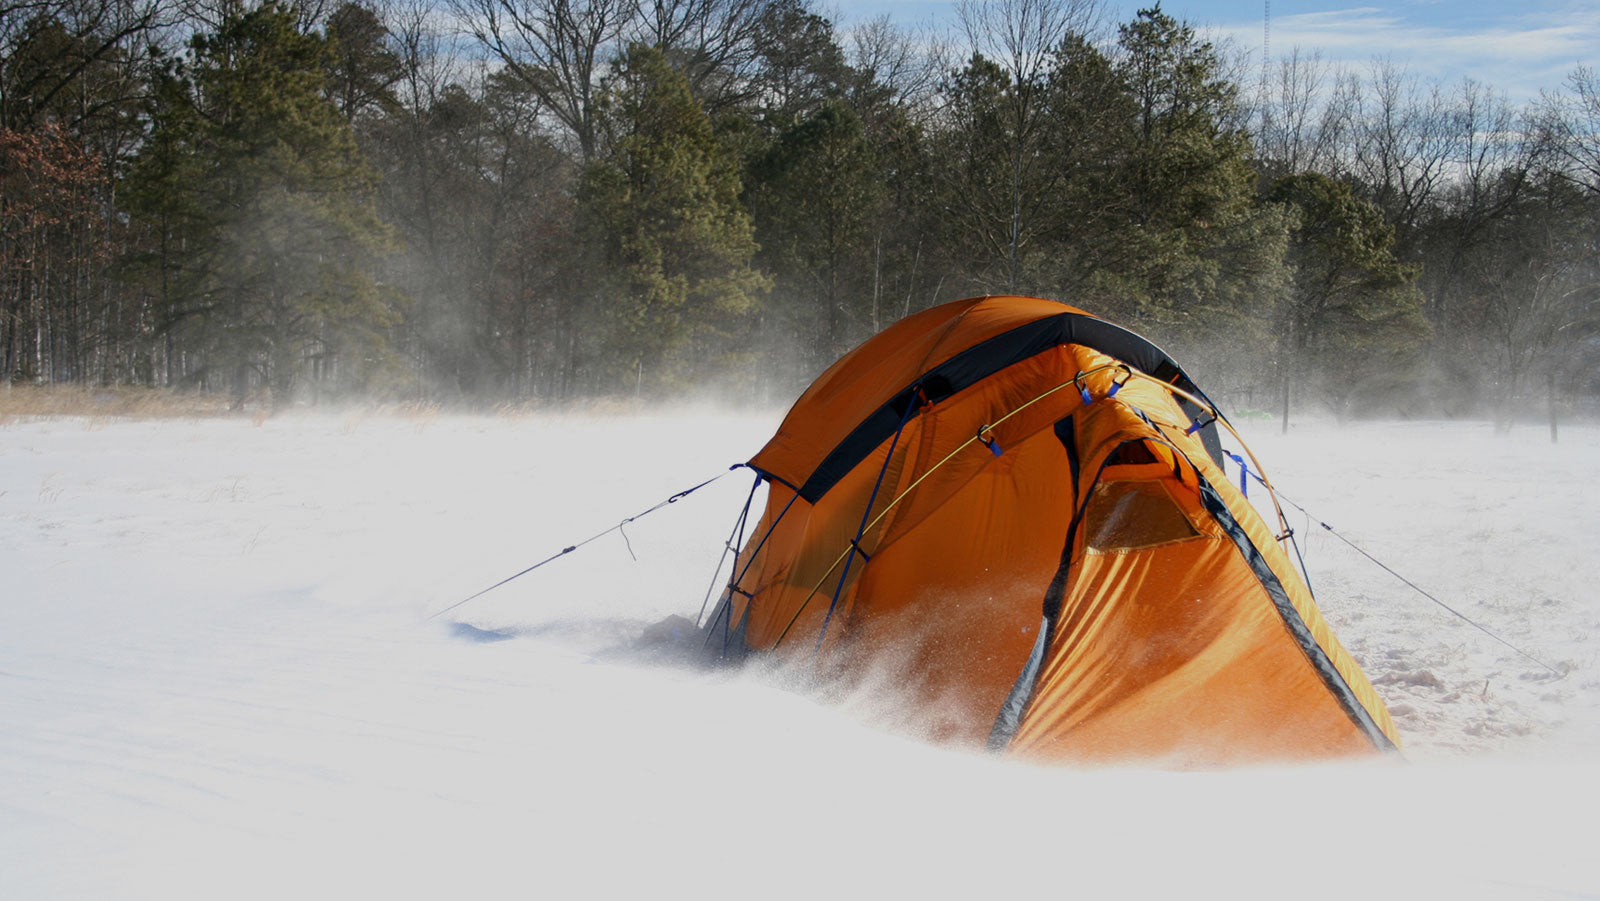 11 Tips for Winter Camping and Backpacking